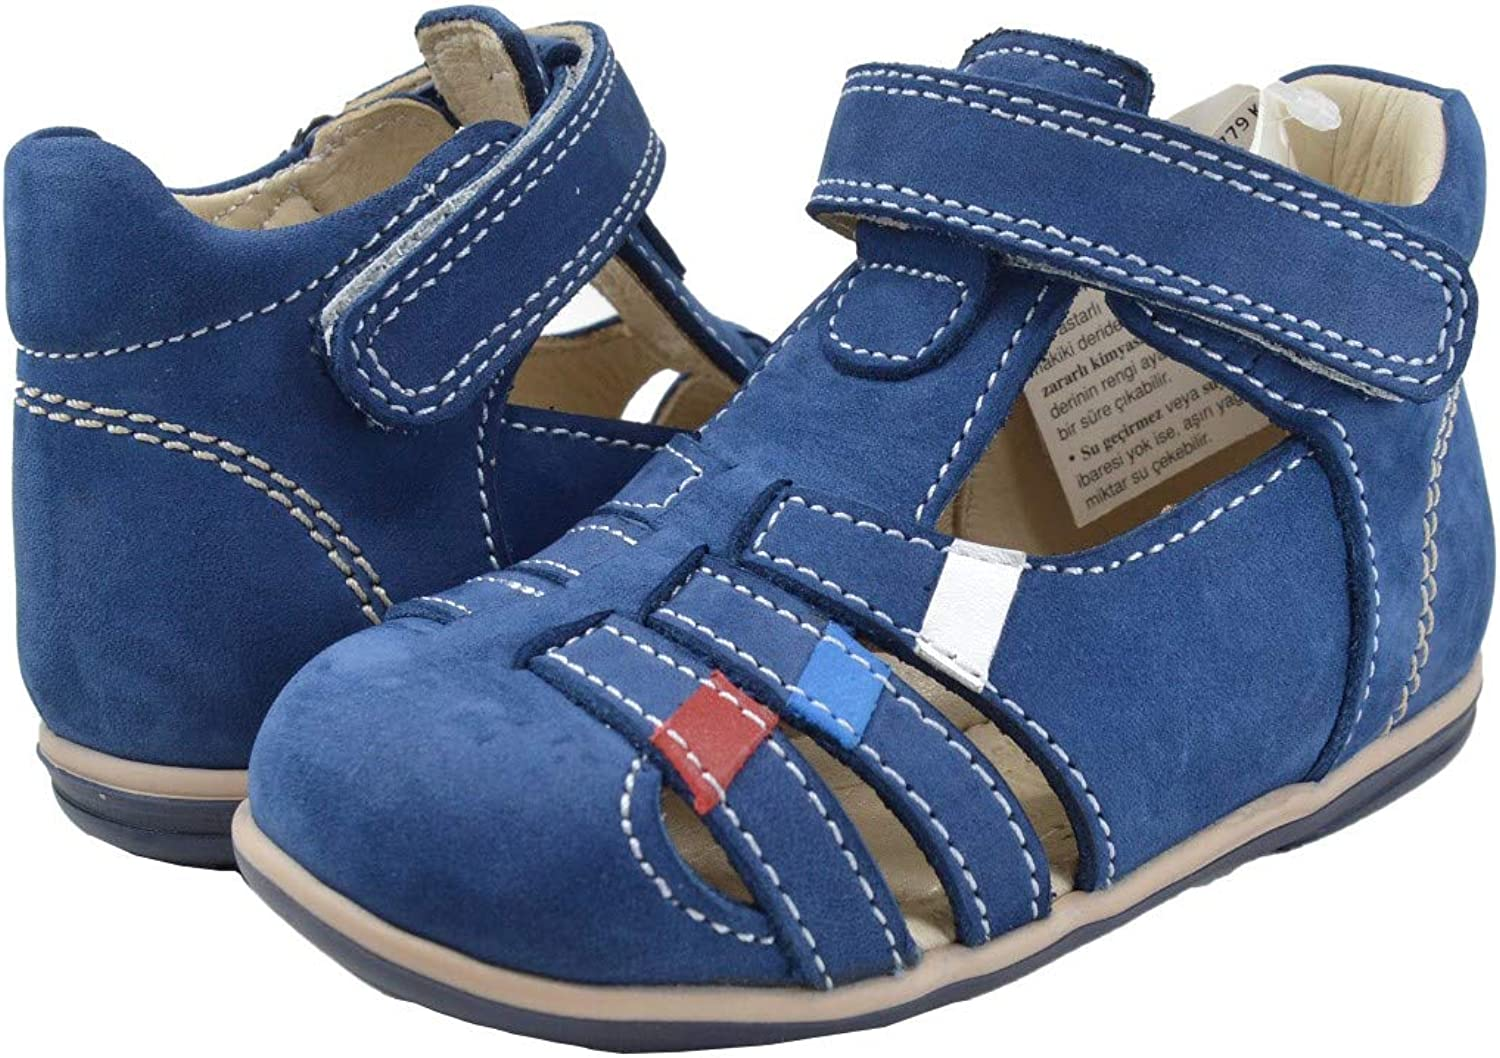 Orthopedic Sandals Boys with Ankle Support